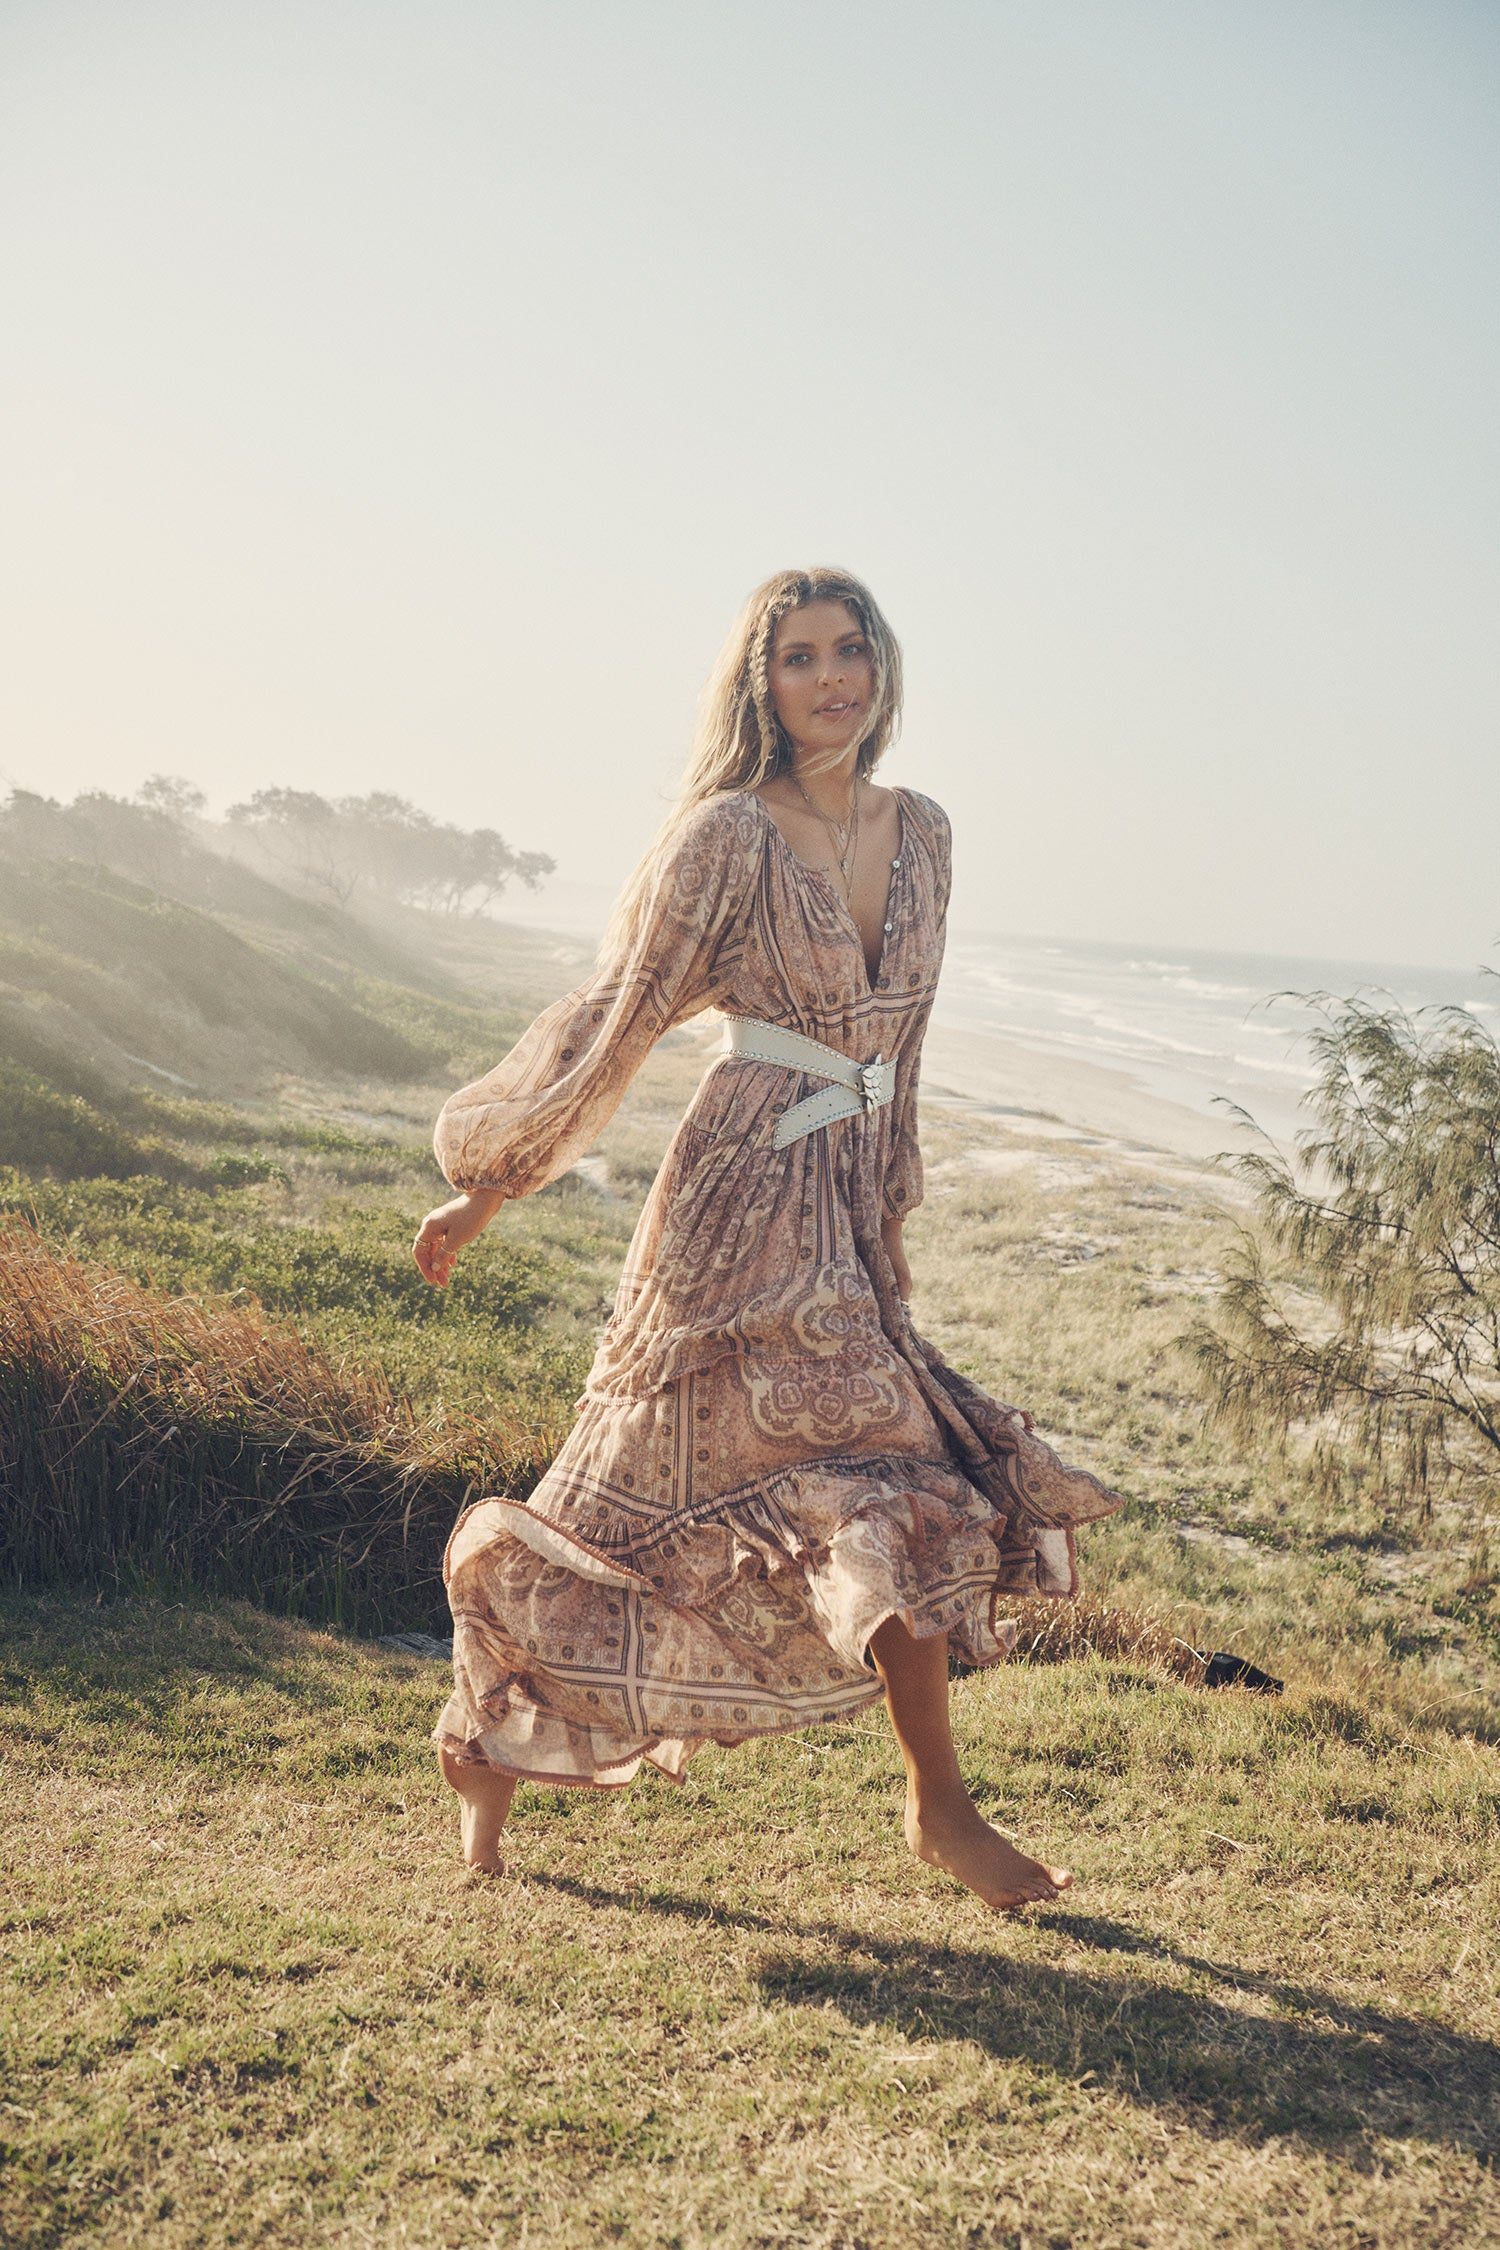 Influencer and model, Elle Ferguson, posing on a grassy hill overlooking a beach while wearing gold jewellery, a white belt and the pale pink Spell Rumour Print Elle Gown, featuring a tiered skirt, ruffles and elasticated cuffs.